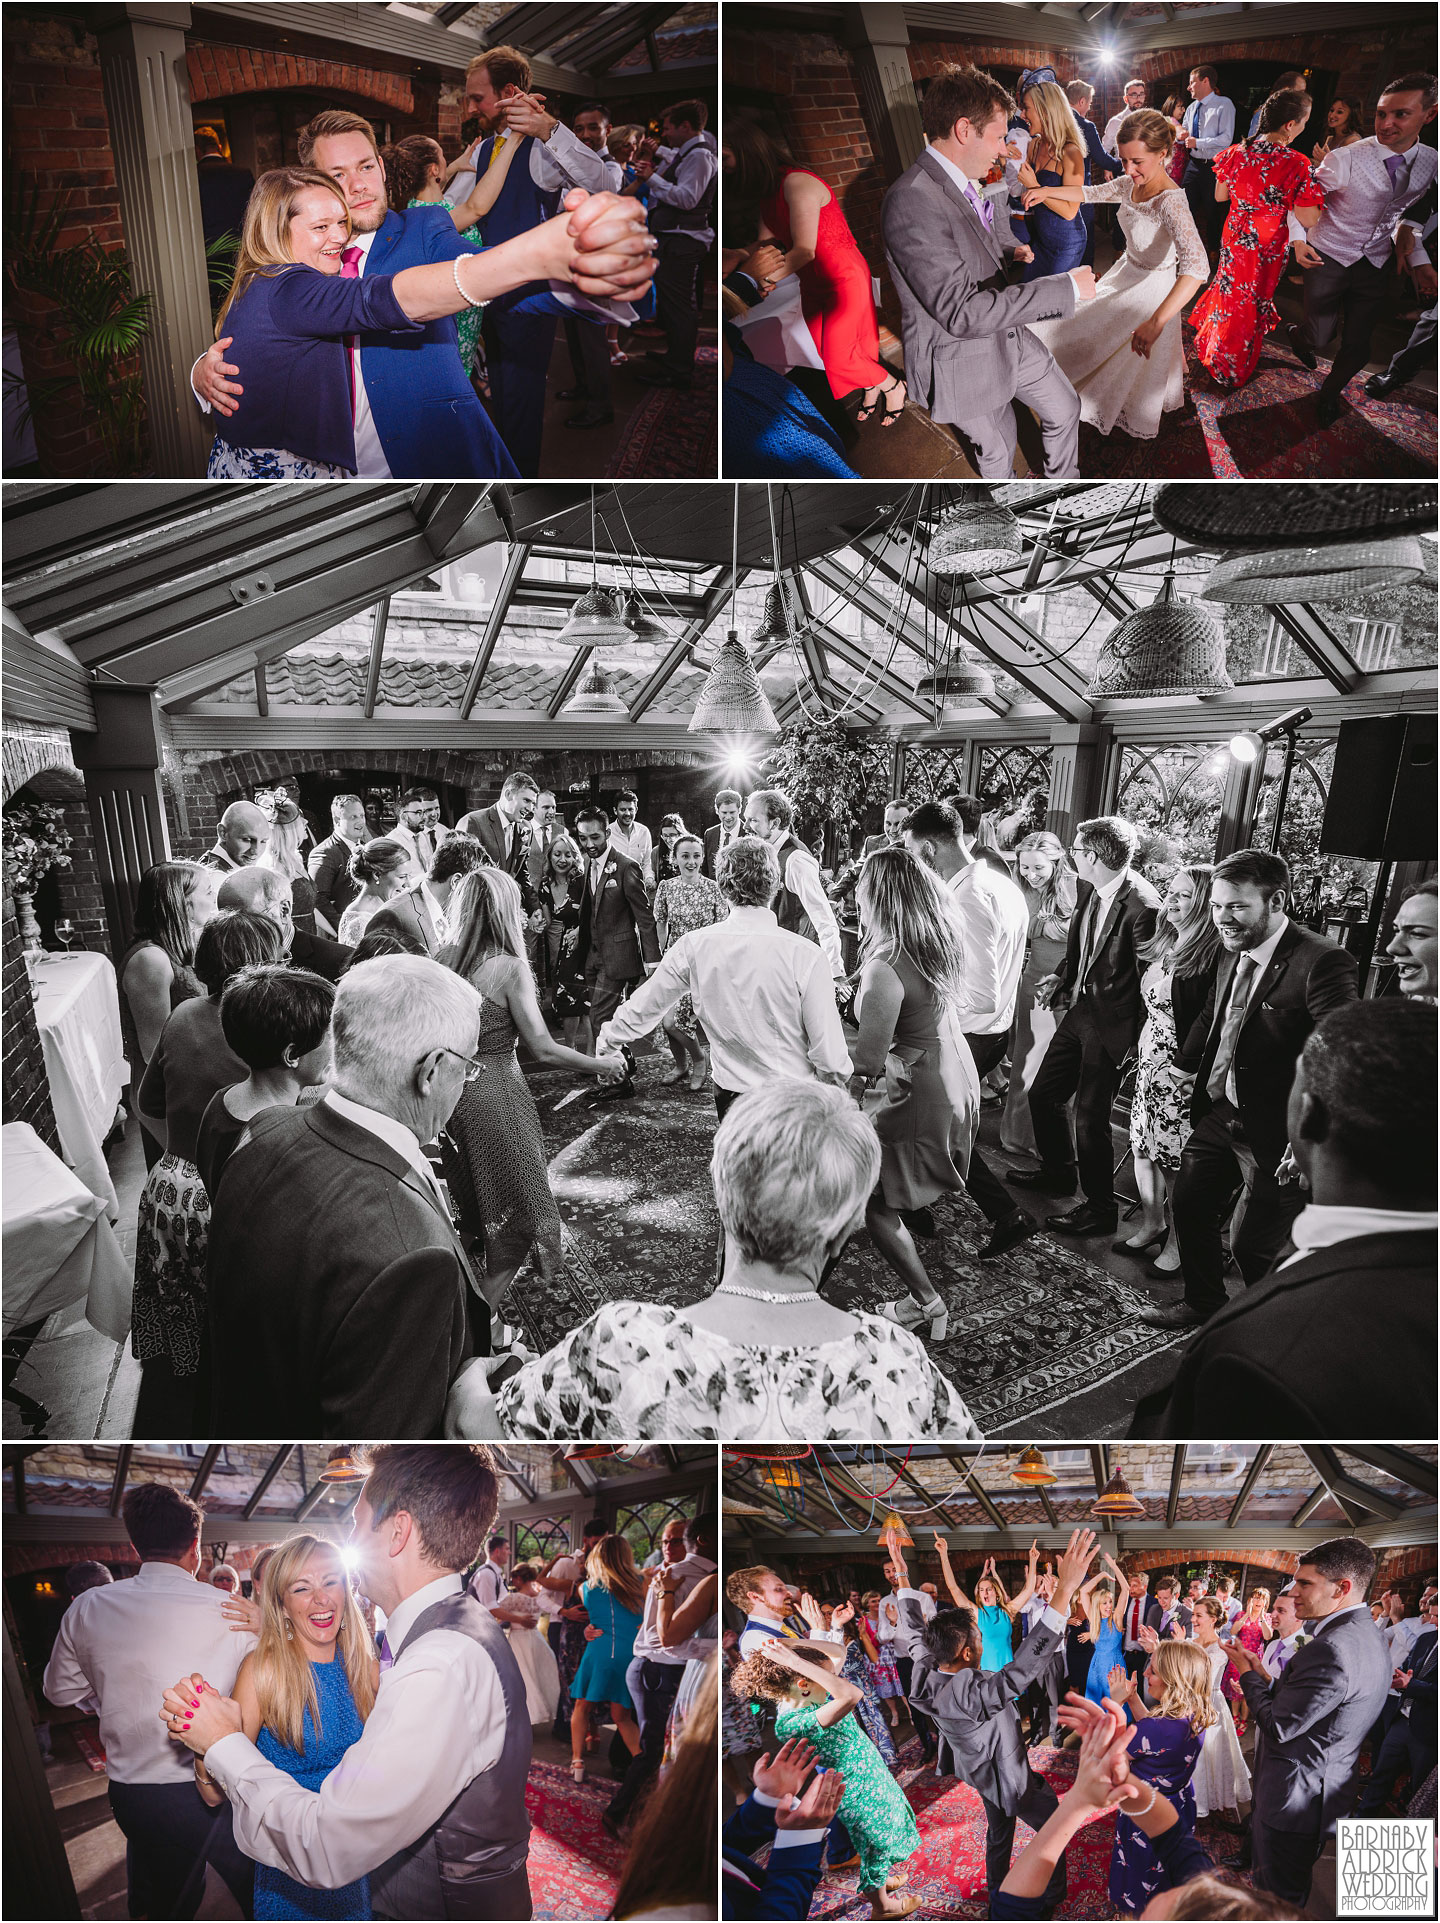 Wedding ceilidh at The Pheasant Hotel Harome, The Pheasant Hotel Wedding Helmsley, Wedding Photography at The Pheasant Hotel North Yorkshire, North Yorkshire Wedding Photographer